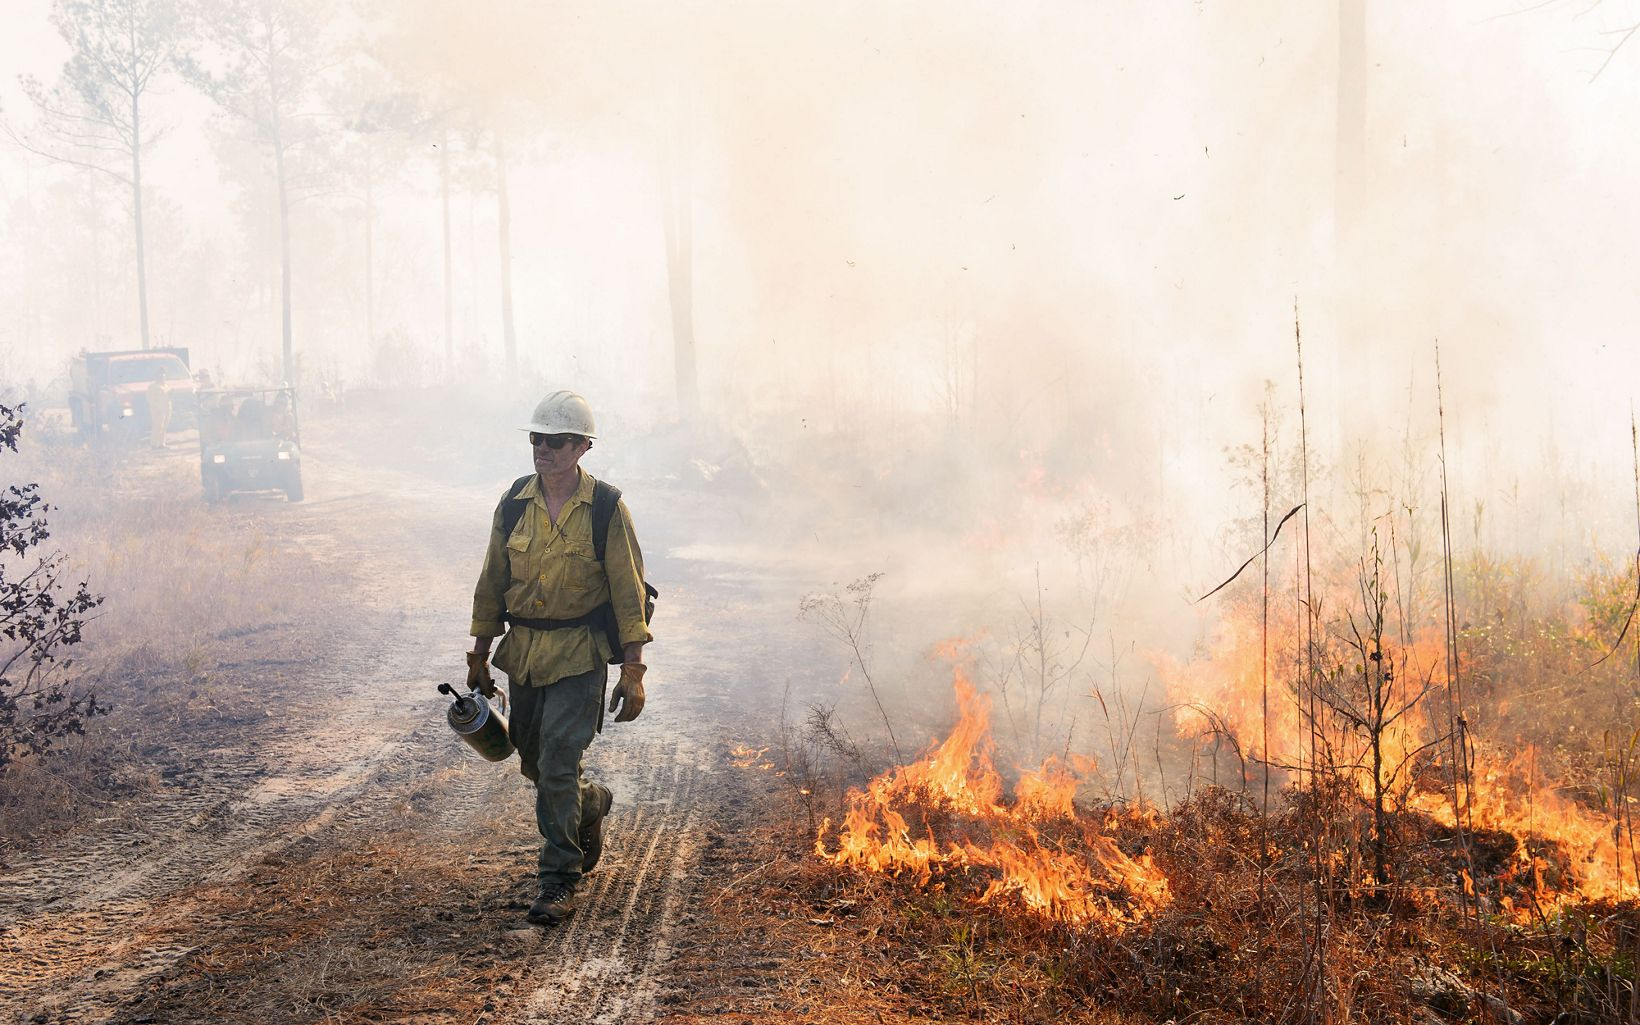 Crew members walk the fire lines to guide the flames and monitor fire behavior.